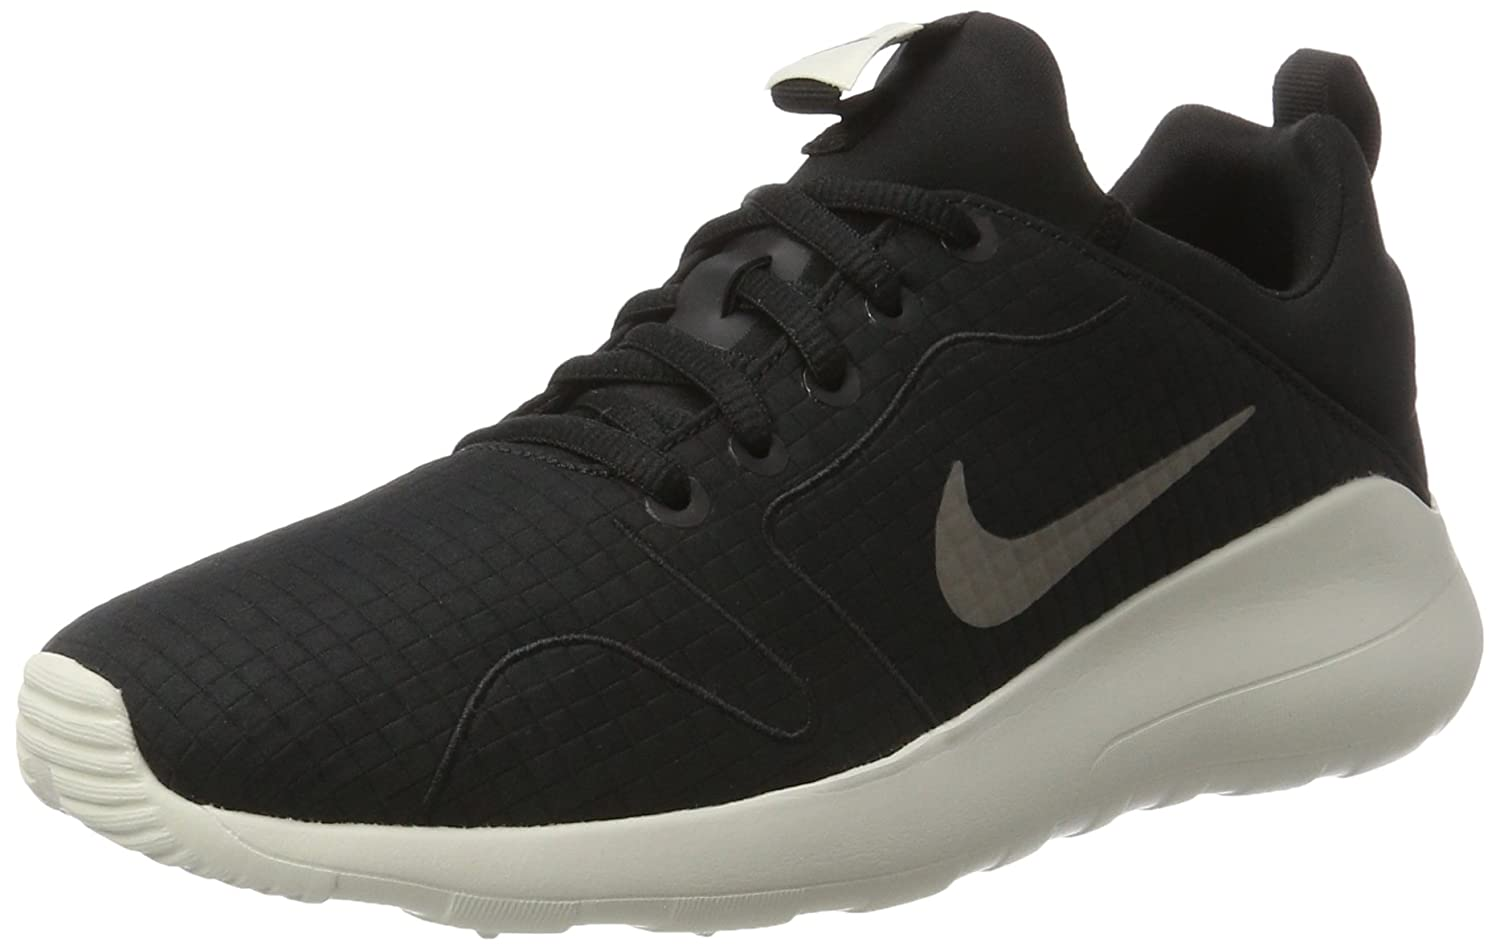 Nike Herren Kaishi 2.0 Prem Sneakers  42.5 EU|Mehrfarbig (Black / Light Bone)